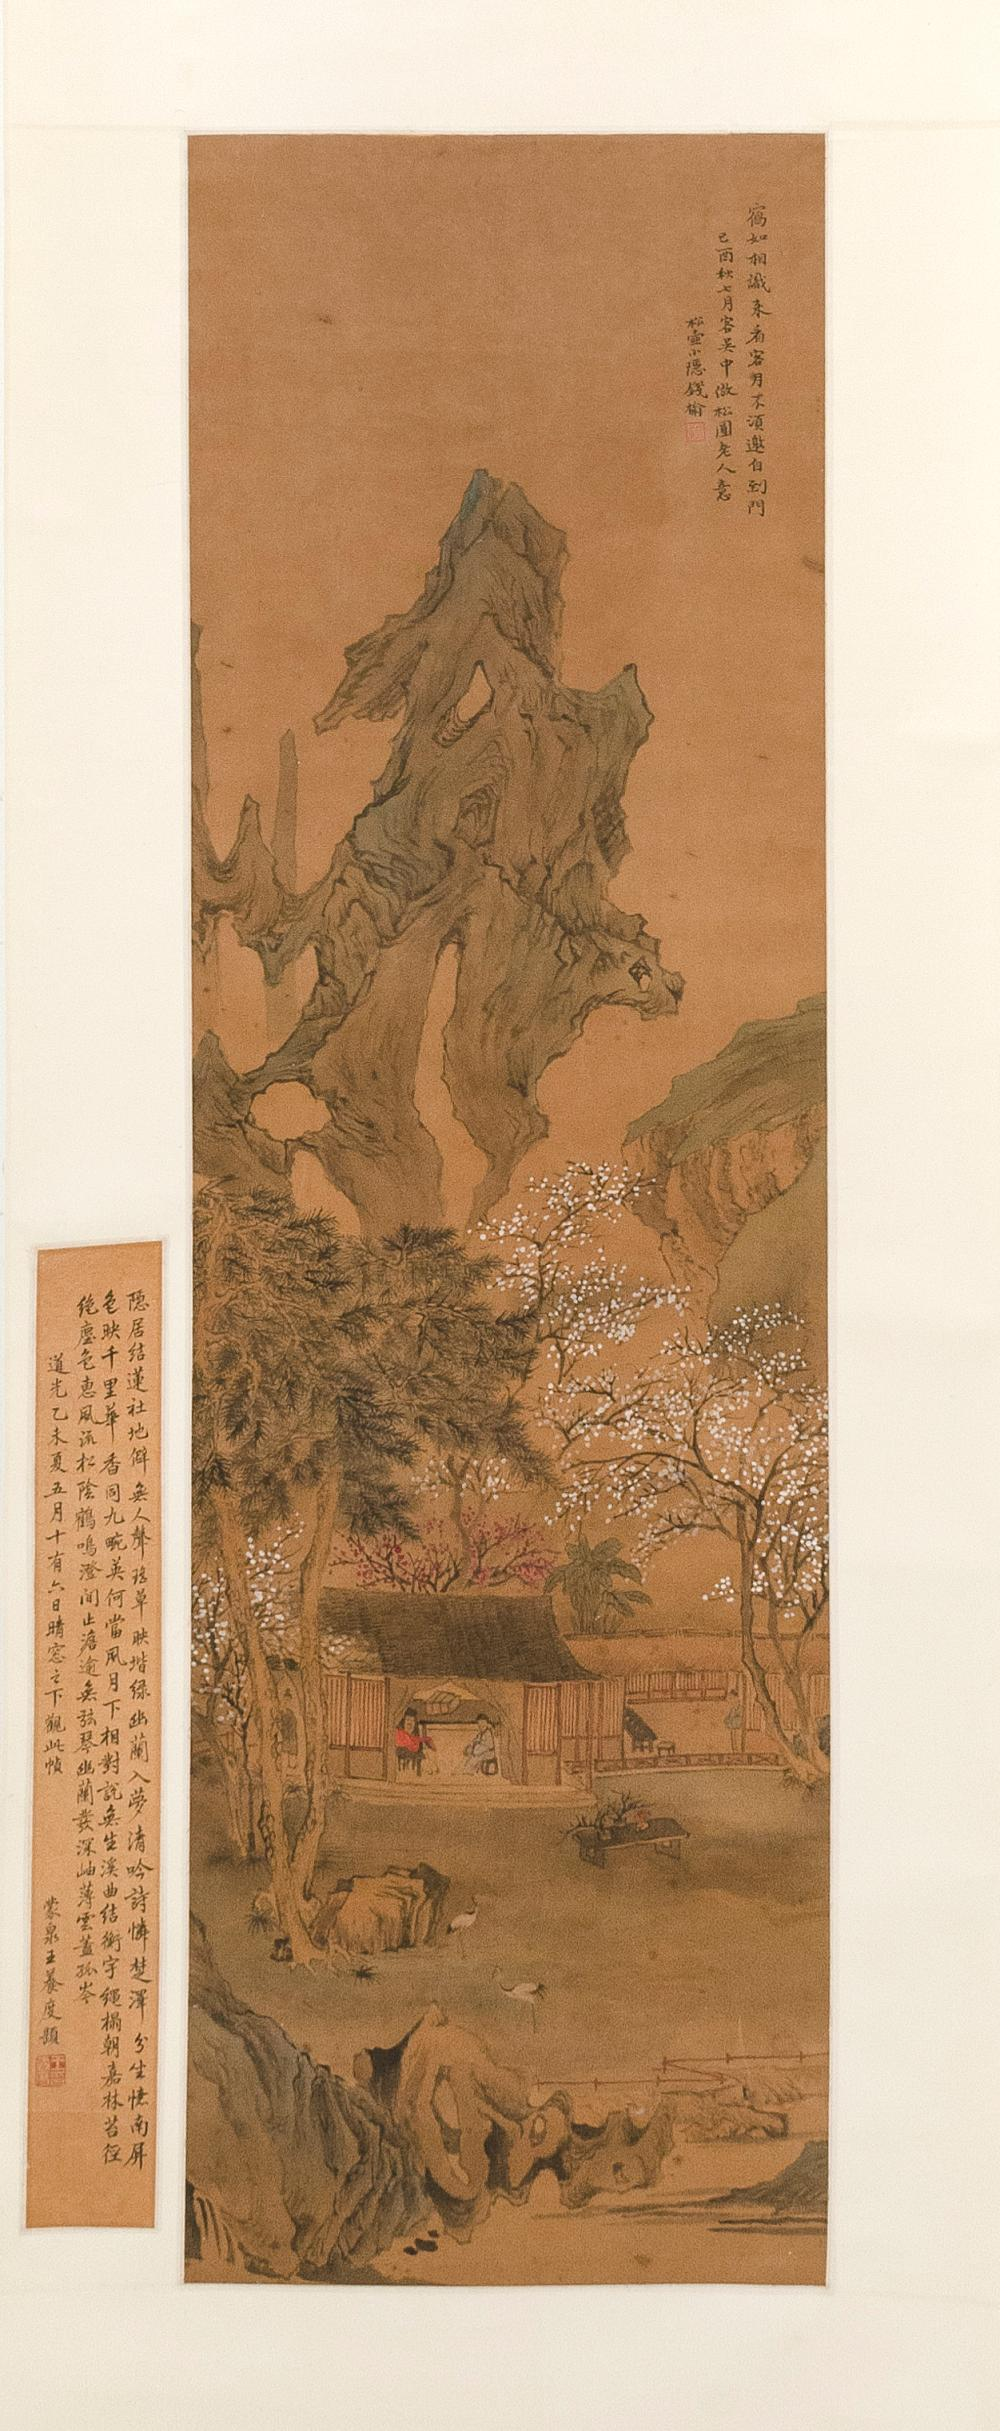 CHINESE SCROLL PAINTING ON PAPER After Quan Du. Depicting a spring scene with sages in a tea house and towering mountains. Marked wi...